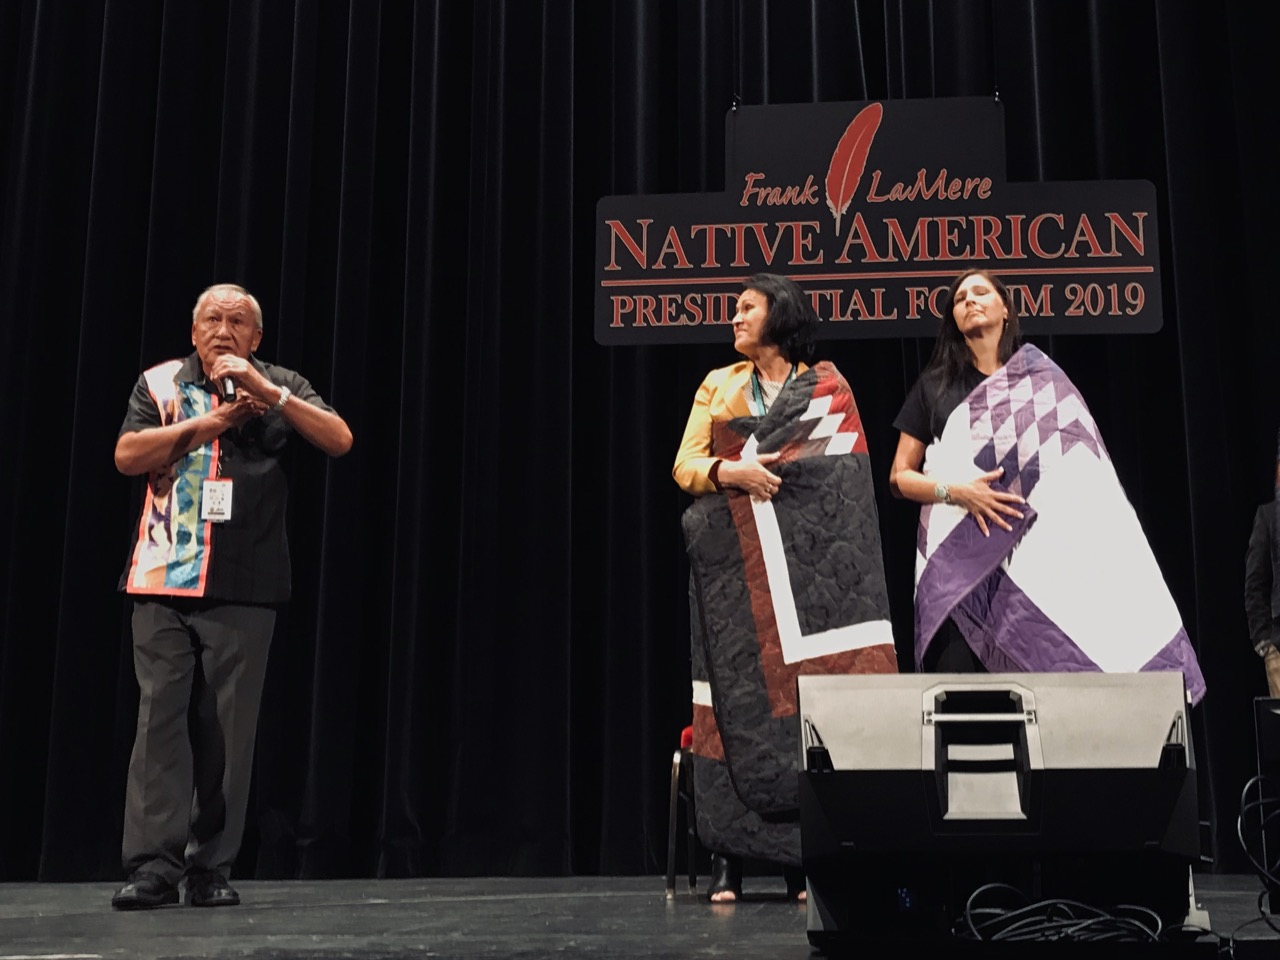 Presidential candidates focus on Native issues at historic forum